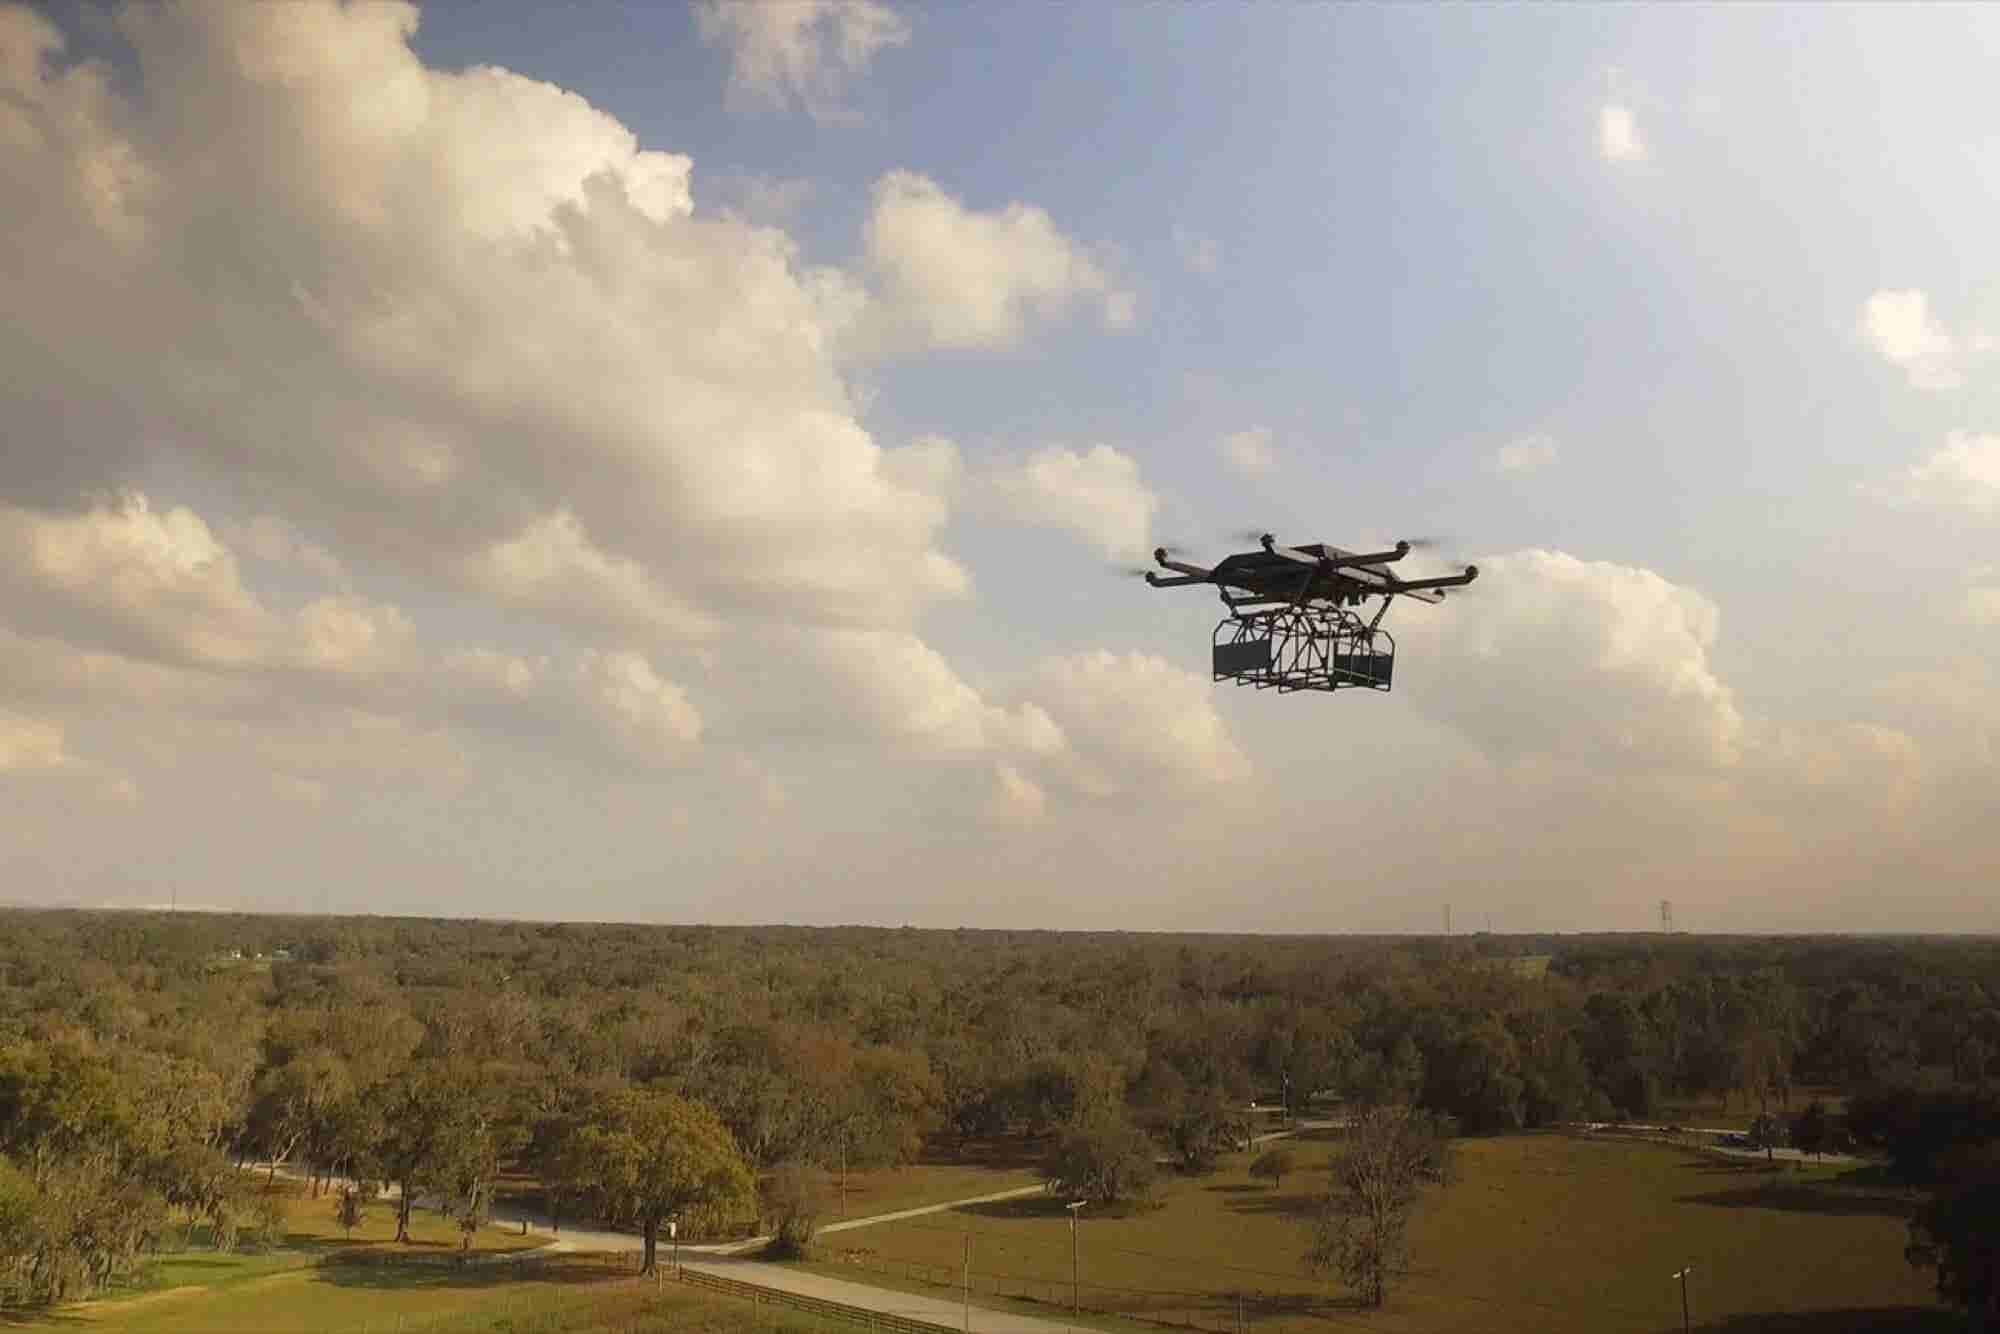 UPS Tests Drone-Based Package Deliveries